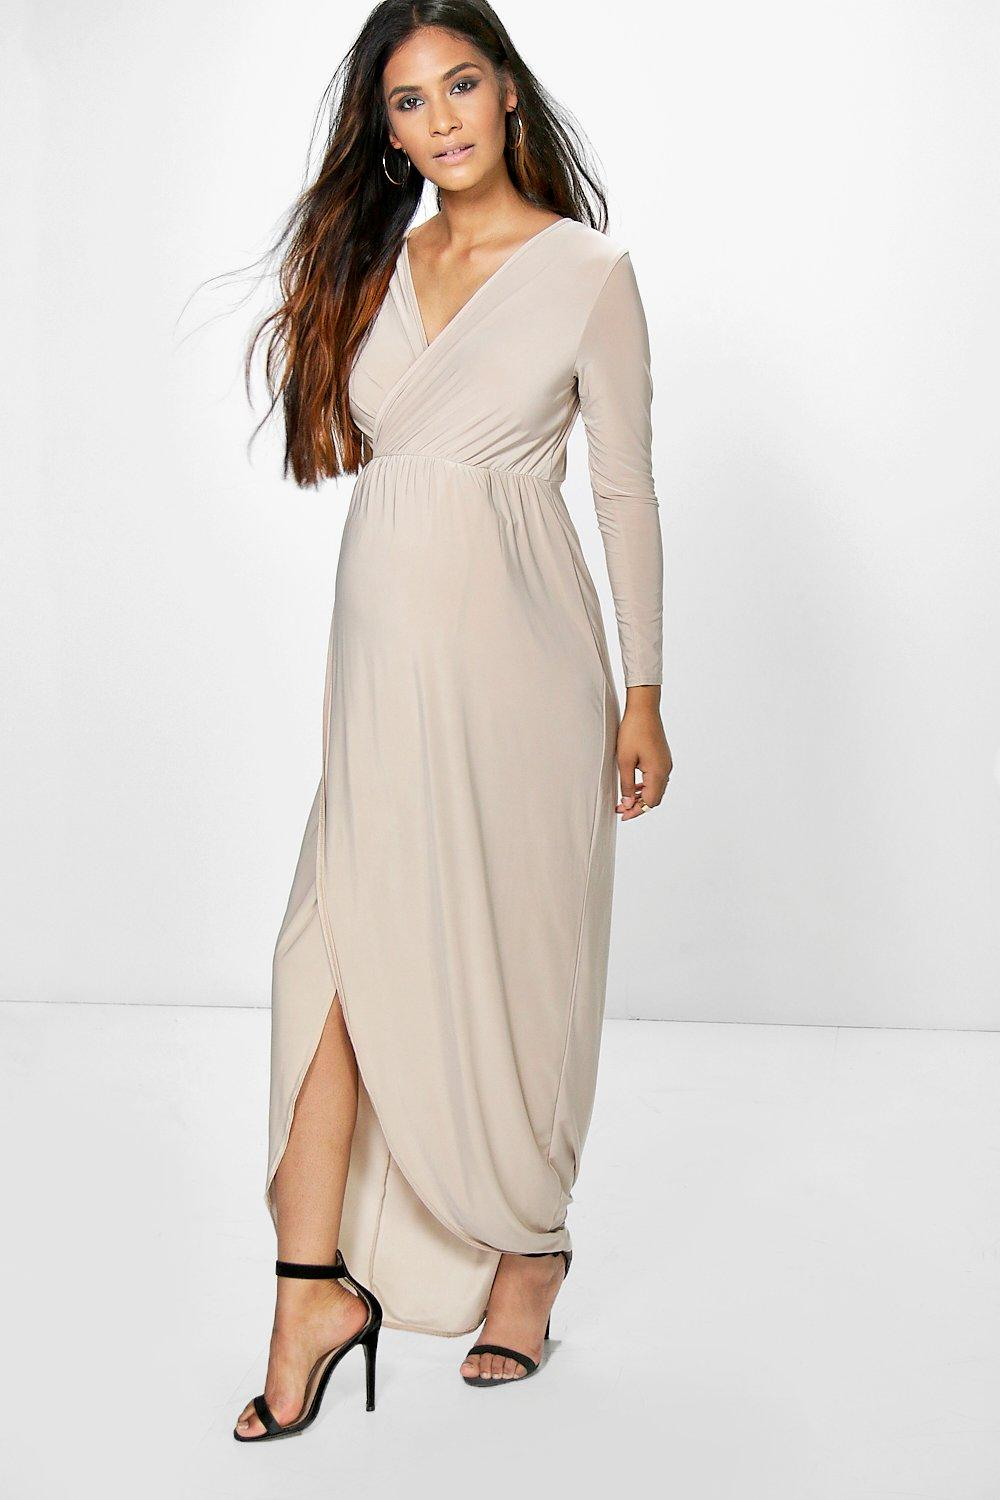 Discover the latest maternity dresses at ASOS. Shop for maternity maxi dresses, pregnancy dresses and special occasion maternity dresses online with ASOS. your browser is not supported. To use ASOS, we recommend using the latest versions of Chrome, Firefox, Safari or Internet Explorer.